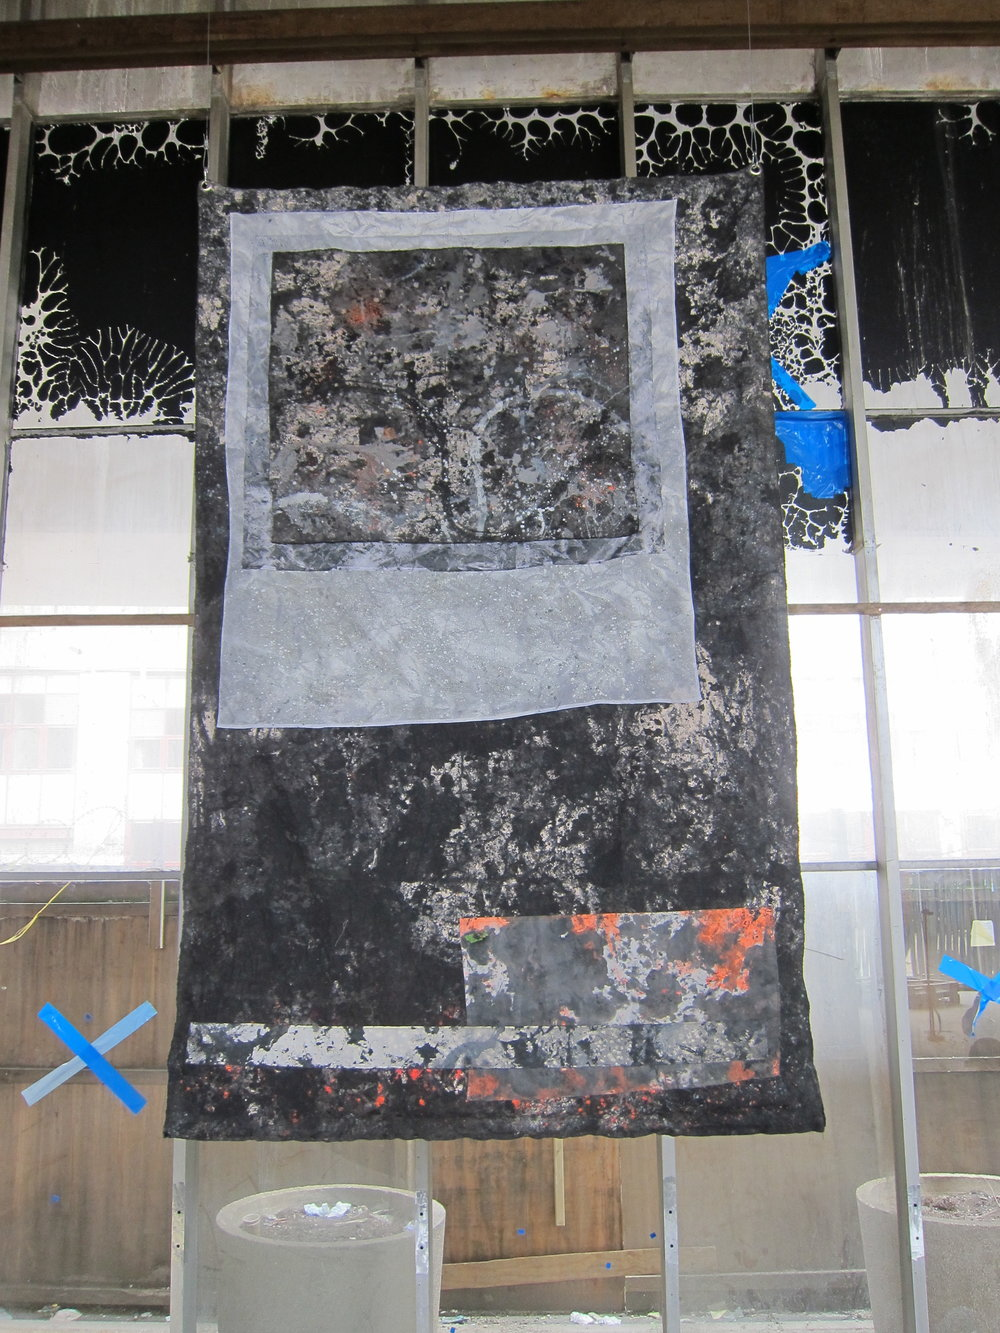 """Acid Reign.   Alkyd resin, acrylic, pigment, ink, dye, gravel, polyester, cotton, canvas &plastic debris netting.  300 x 195 cm.                      Normal   0           false   false   false     EN-US   JA   X-NONE                                                                                                                                                                                                                                                                                                                                                                              /* Style Definitions */ table.MsoNormalTable {mso-style-name:""""Table Normal""""; mso-tstyle-rowband-size:0; mso-tstyle-colband-size:0; mso-style-noshow:yes; mso-style-priority:99; mso-style-parent:""""""""; mso-padding-alt:0cm 5.4pt 0cm 5.4pt; mso-para-margin:0cm; mso-para-margin-bottom:.0001pt; mso-pagination:widow-orphan; font-size:12.0pt; font-family:Helvetica; mso-ansi-language:EN-US;}                         Normal   0           false   false   false     EN-US   JA   X-NONE                                                                                                                                                                                                                                                                                                                                                                              /* Style Definitions */ table.MsoNormalTable {mso-style-name:""""Table Normal""""; mso-tstyle-rowband-size:0; mso-tstyle-colband-size:0; mso-style-noshow:yes; mso-style-priority:99; mso-style-parent:""""""""; mso-padding-alt:0cm 5.4pt 0cm 5.4pt; mso-para-margin:0cm; mso-para-margin-bottom:.0001pt; mso-pagination:widow-orphan; font-size:12.0pt; font-family:Helvetica; mso-ansi-language:EN-US;}           Silver Sehnsucht  exhibition at The Silver Building, London 2017.                      Normal   0           false   false   false     EN-US   JA   X-NONE                                 """